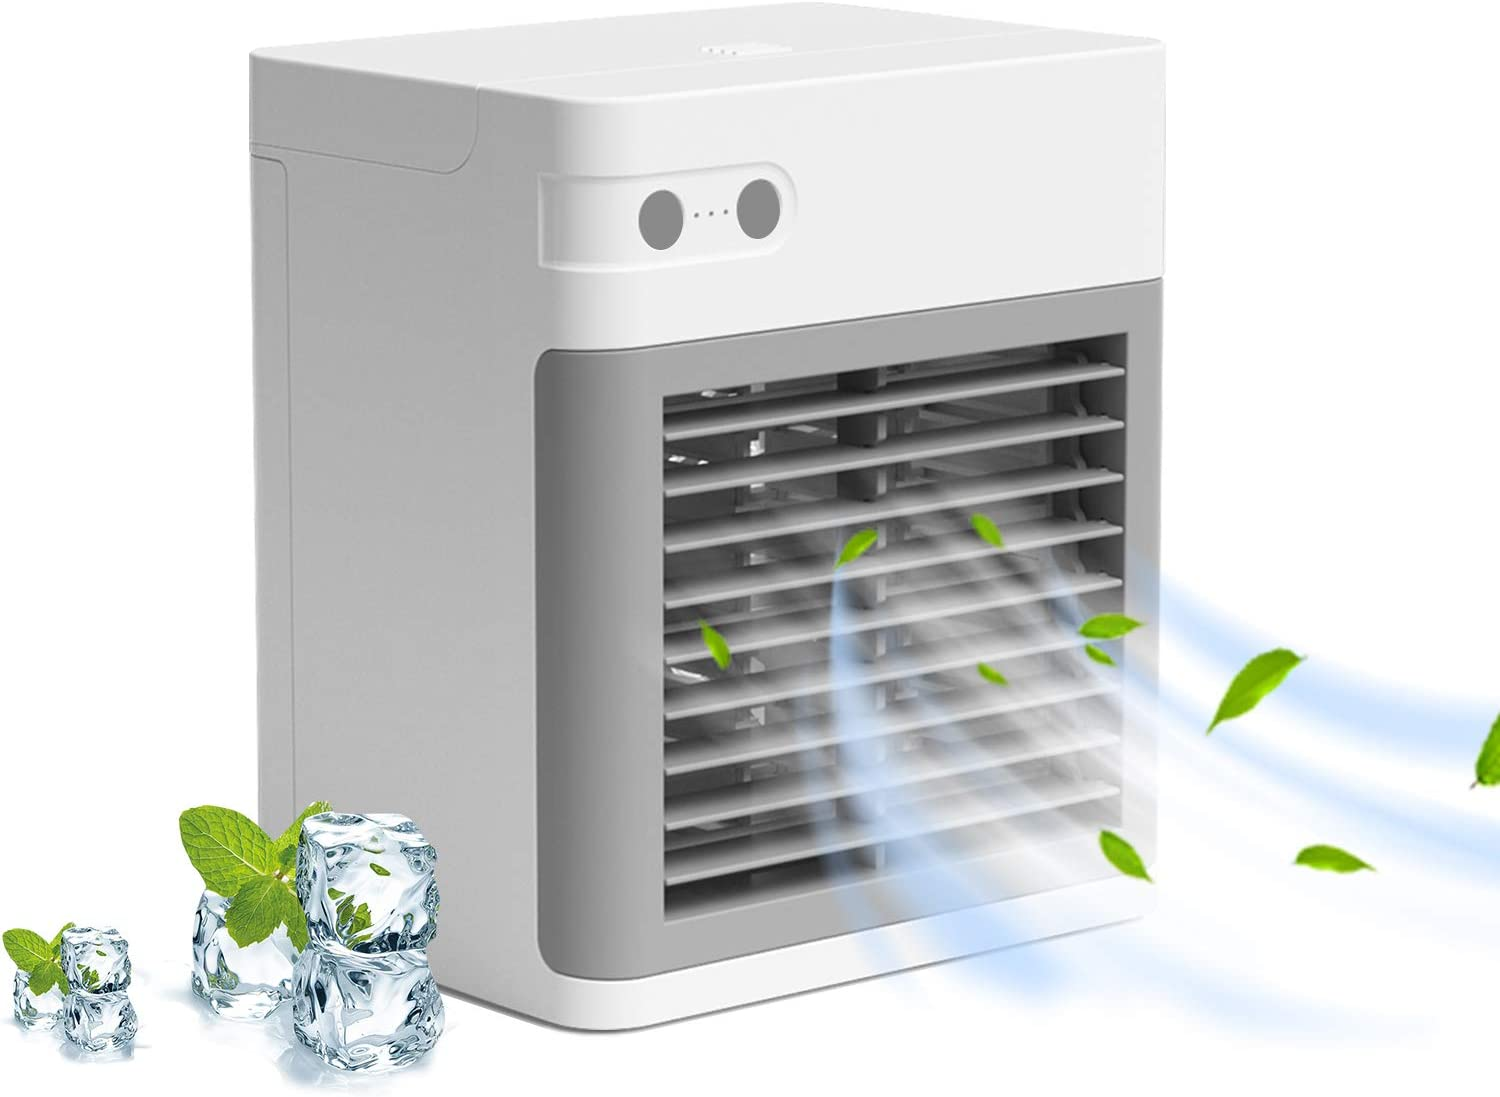 Portable Air Conditioner, Quiet USB Air Cooler with 3-Speed, Rechargeable Mini Air Conditioner with LED Light, Desktop Water Cooling Fan for Small Room/Office/Dorm/Bedroom